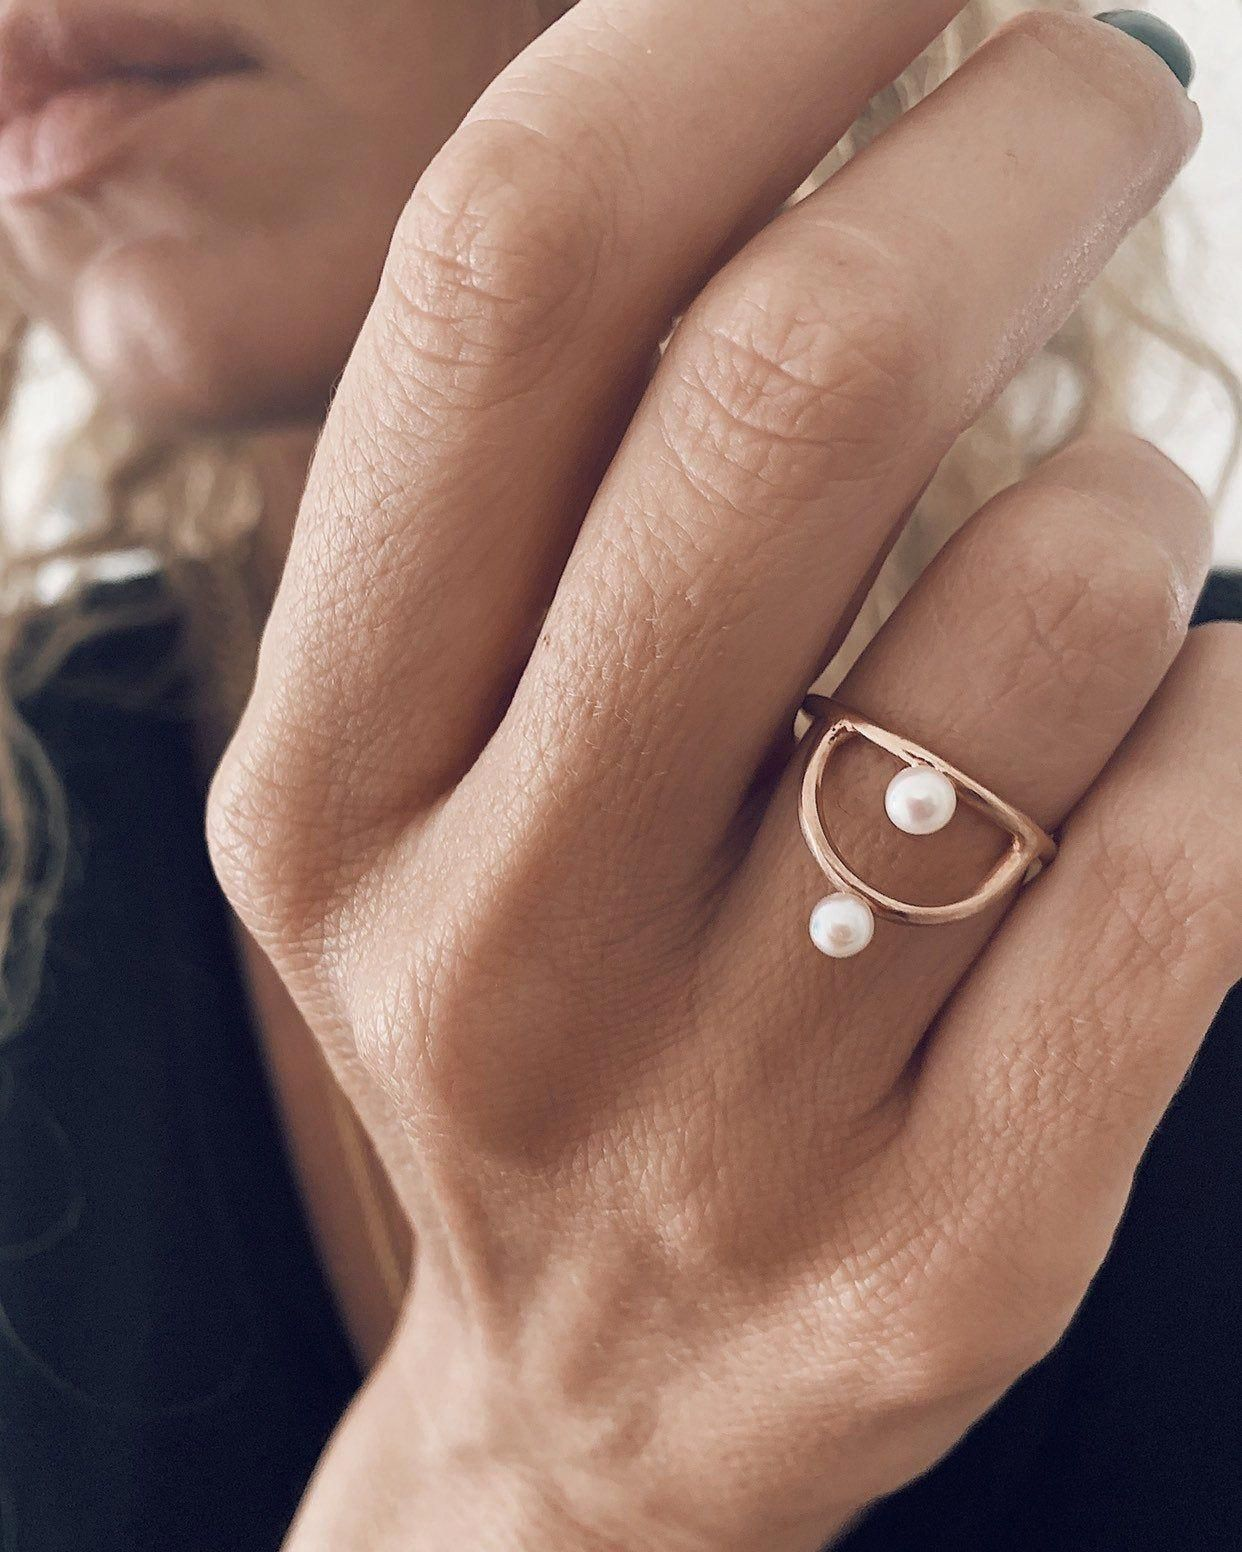 Gold Dainty Solitaire Ring Ethnic Fine Ring Handmade 925 Sterling Silver Jewelry Minimalist Wedding Jewelry Designer Stackable Ring for her